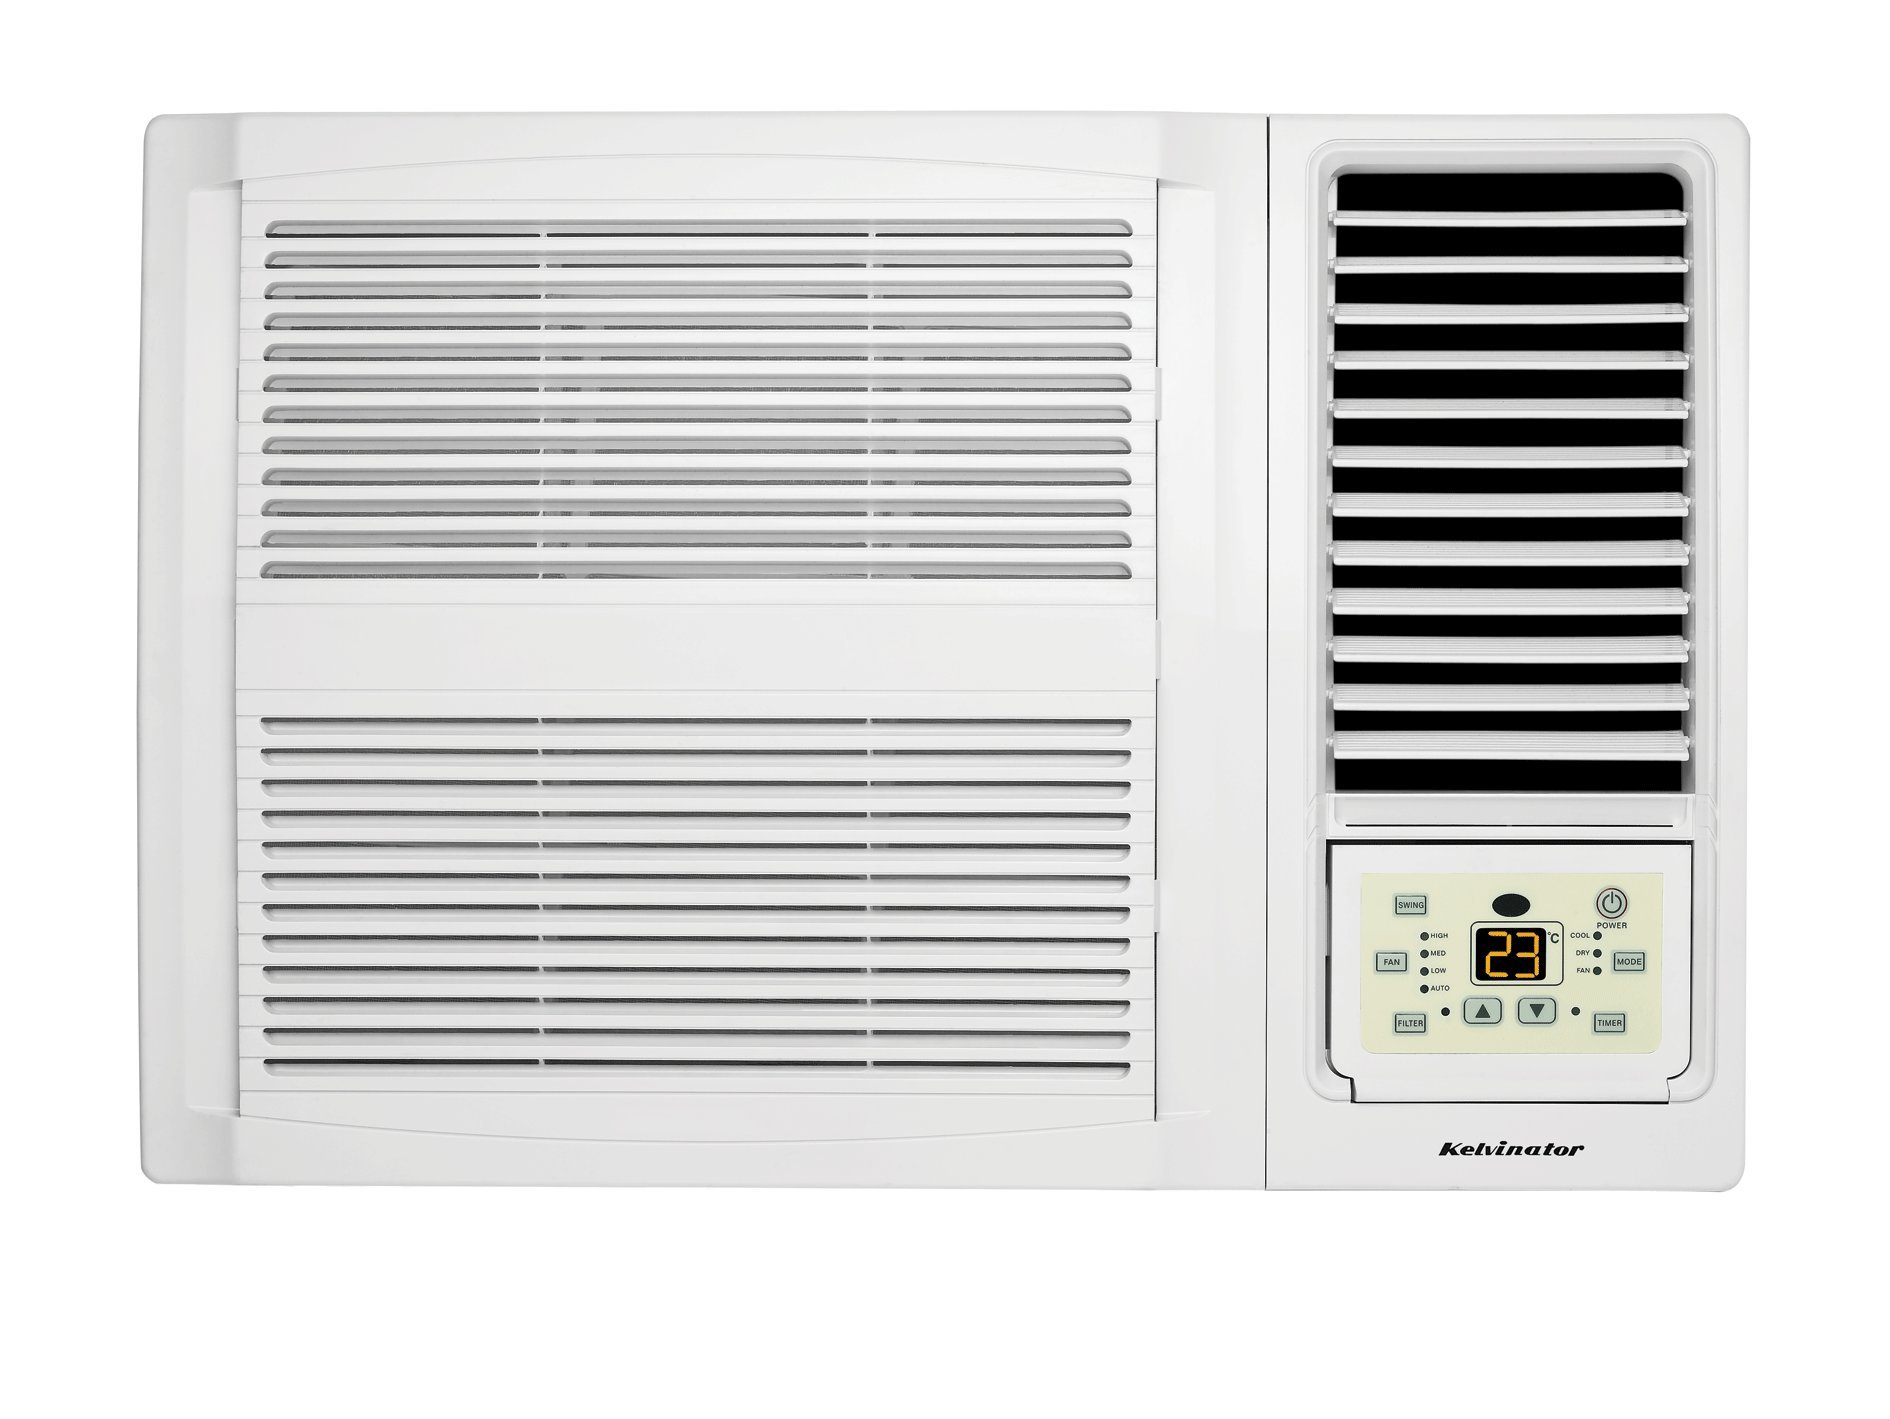 Kelvinator KWH62CRE 6kW Window Box Air Conditioner - FREE Delivery & Price Match* image